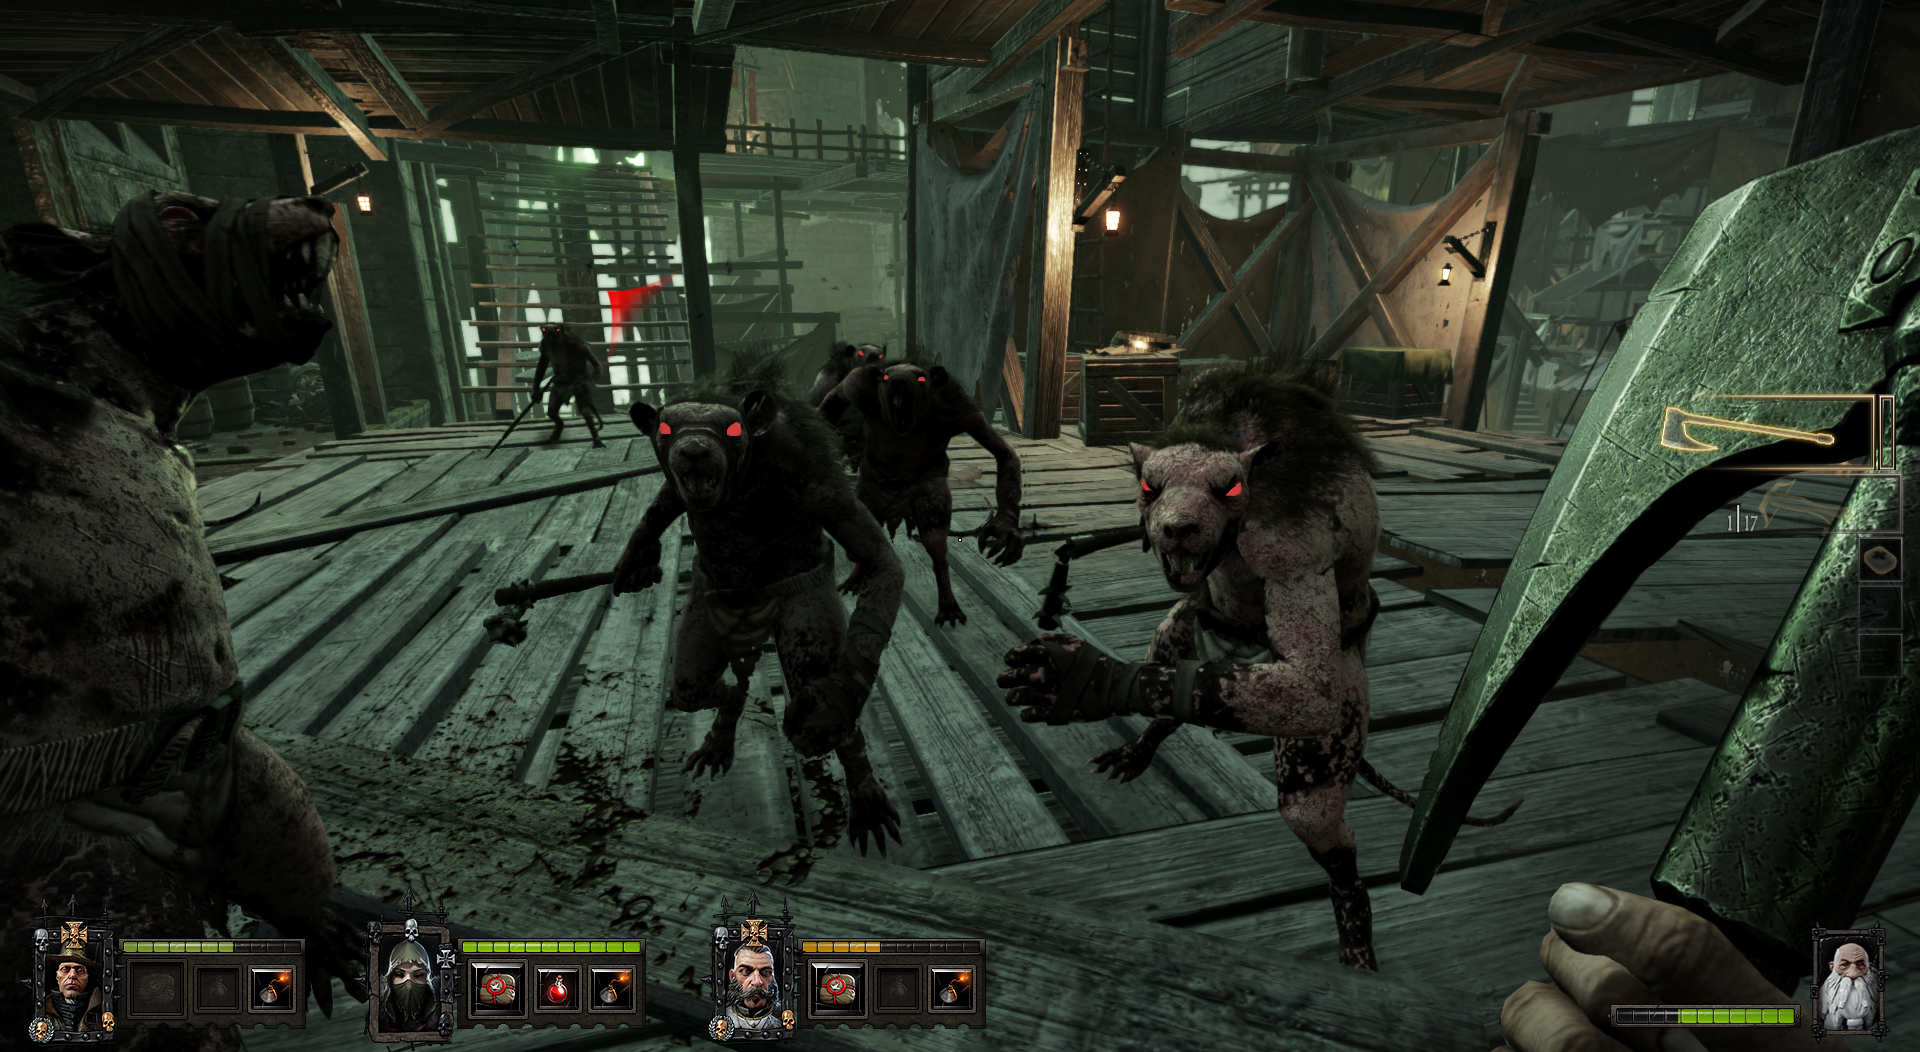 Vermintide 2 strict matchmaking